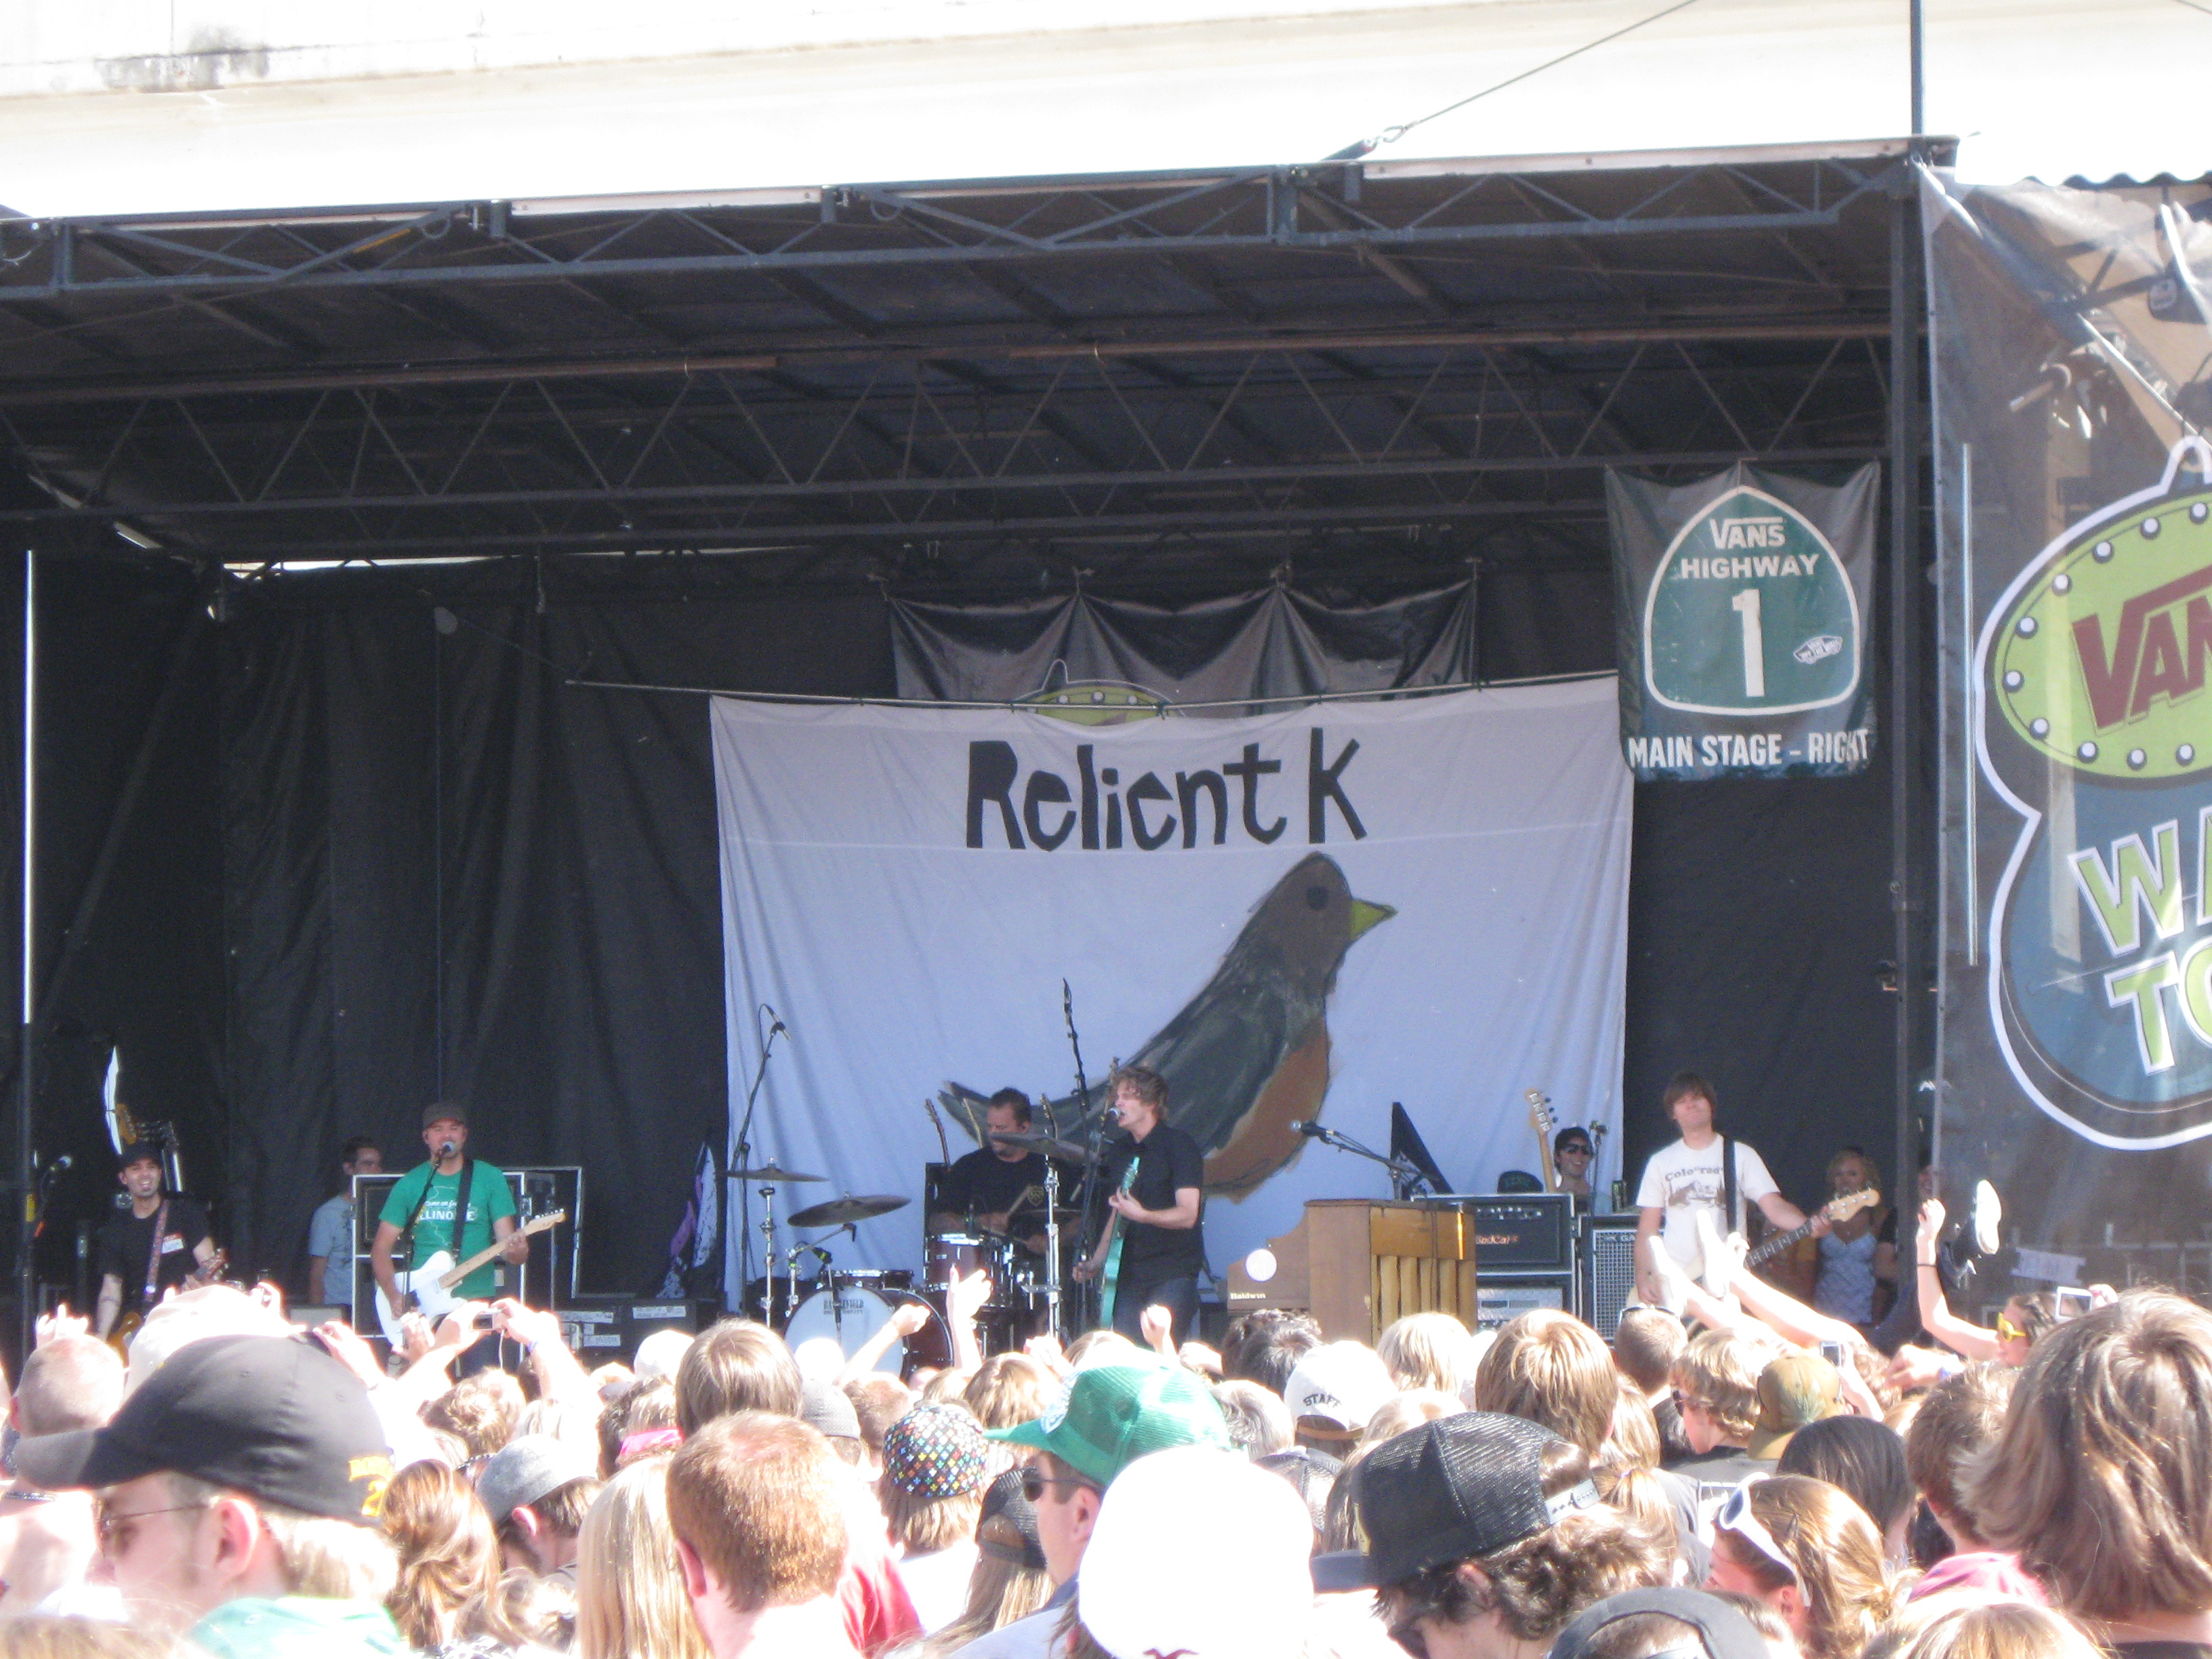 ed9abdf9f3 List of Relient K tours and live performances. From Wikipedia ...